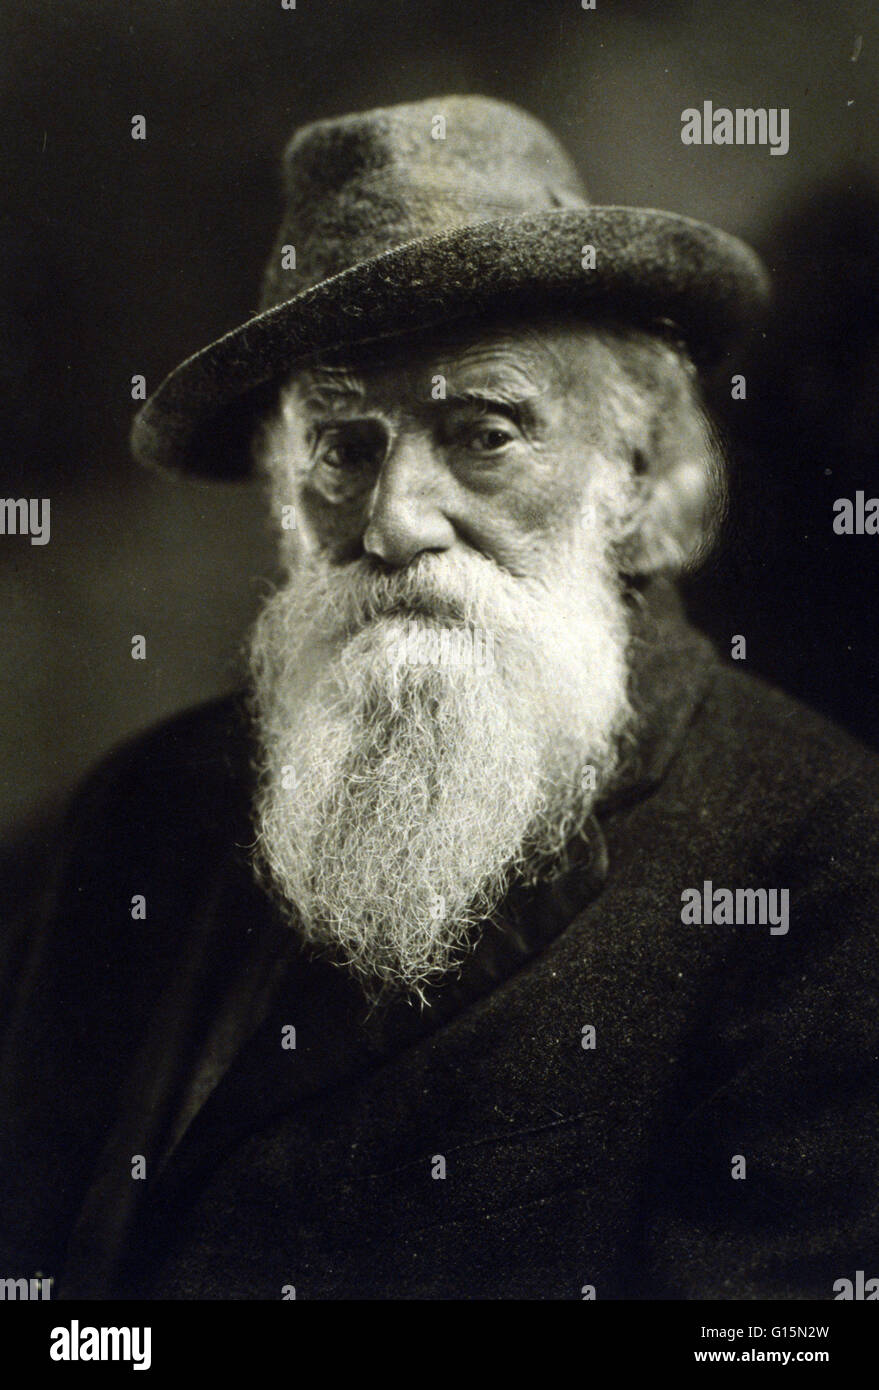 John Burroughs (April 3, 1837 - March 29, 1921) was an American naturalist, proponent of the American conservation - Stock Image